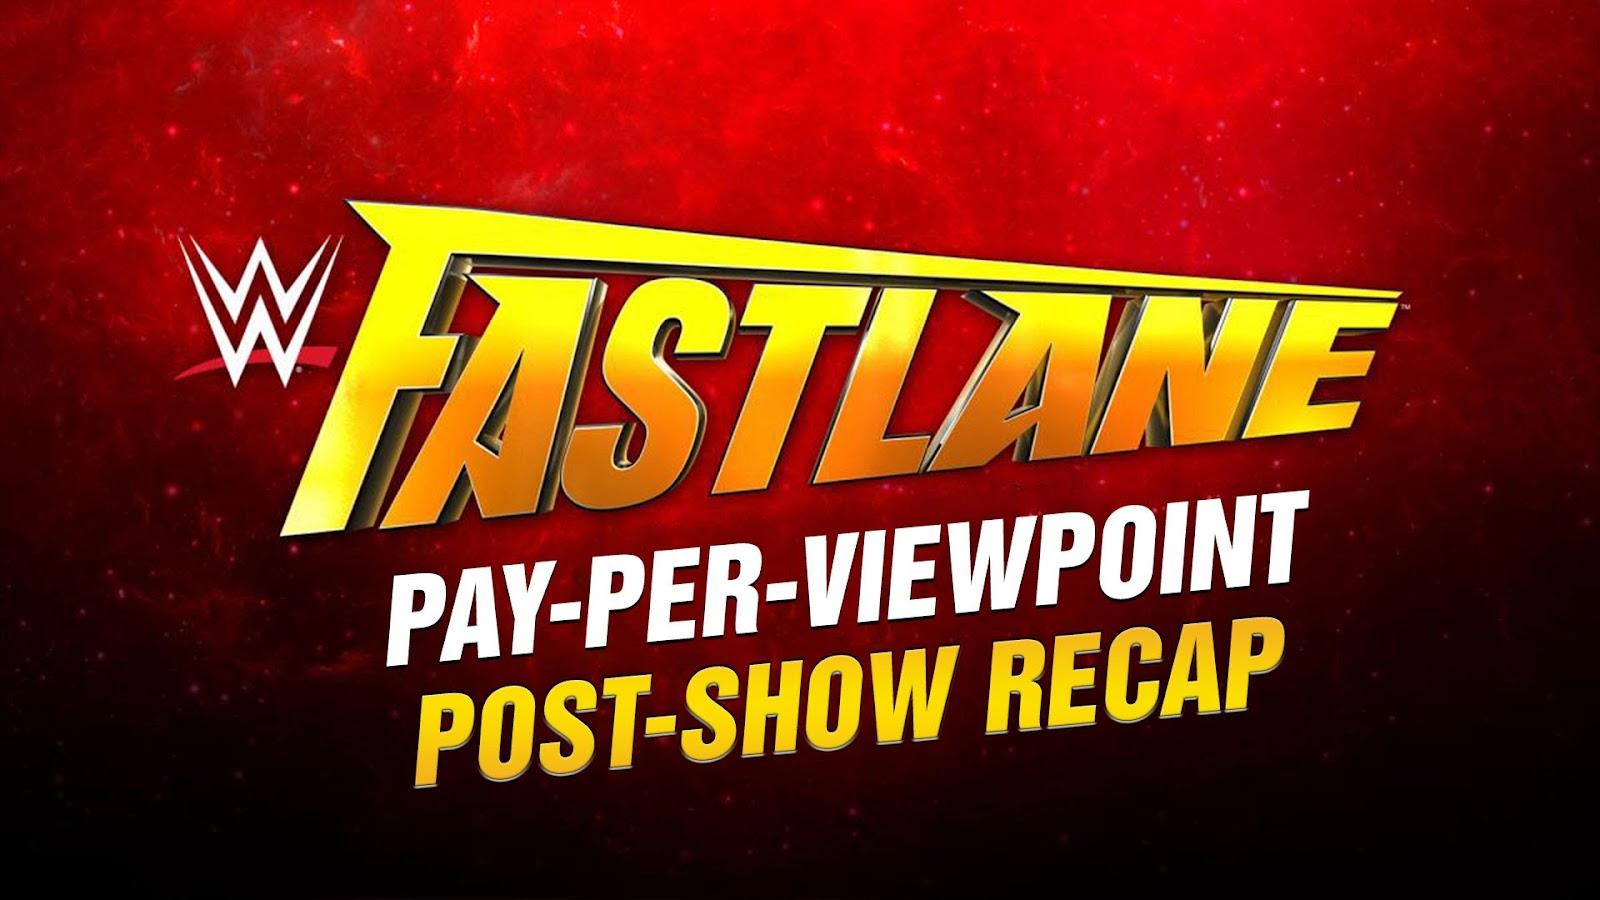 WWE Fastlane 2017 Recap and Review Podcast